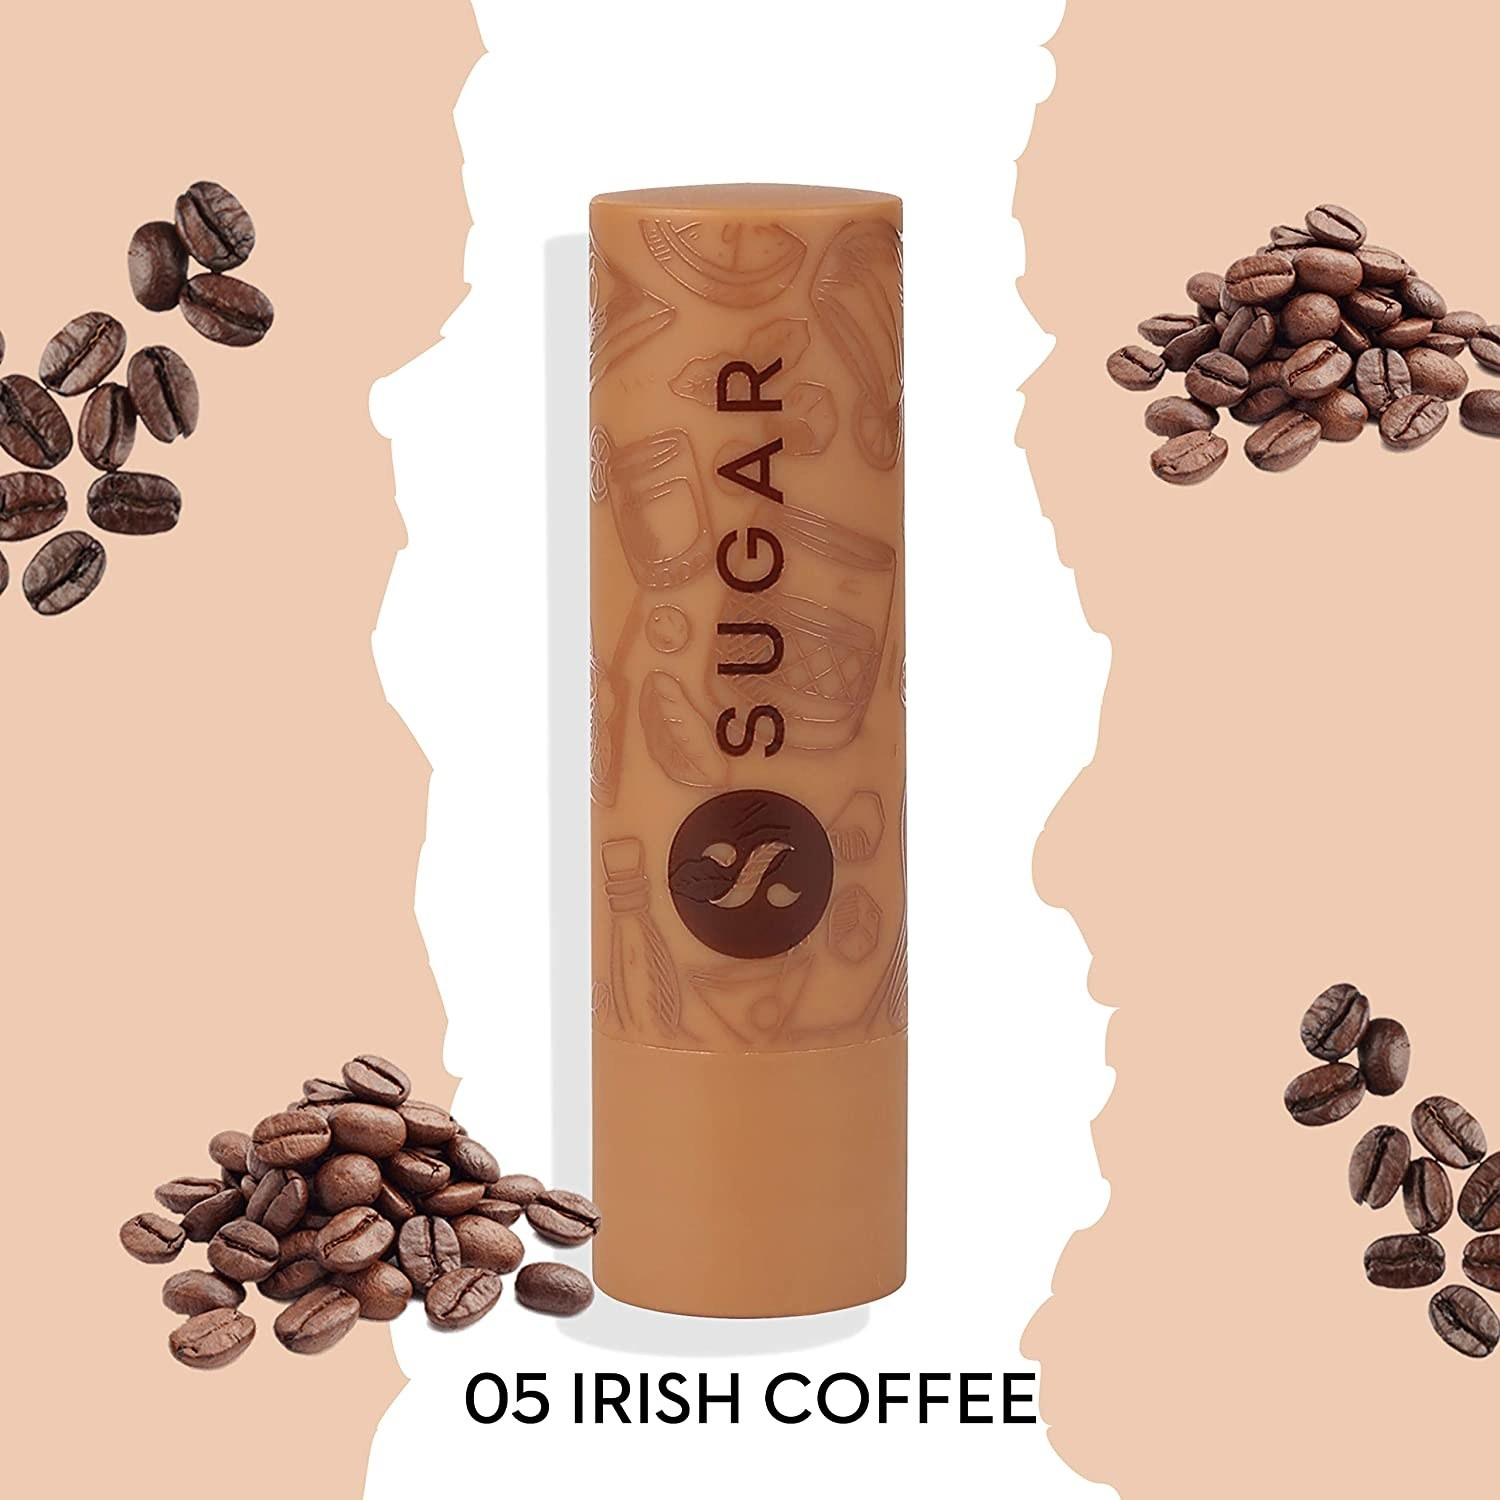 A coffee lip balm surrounded by coffee beans